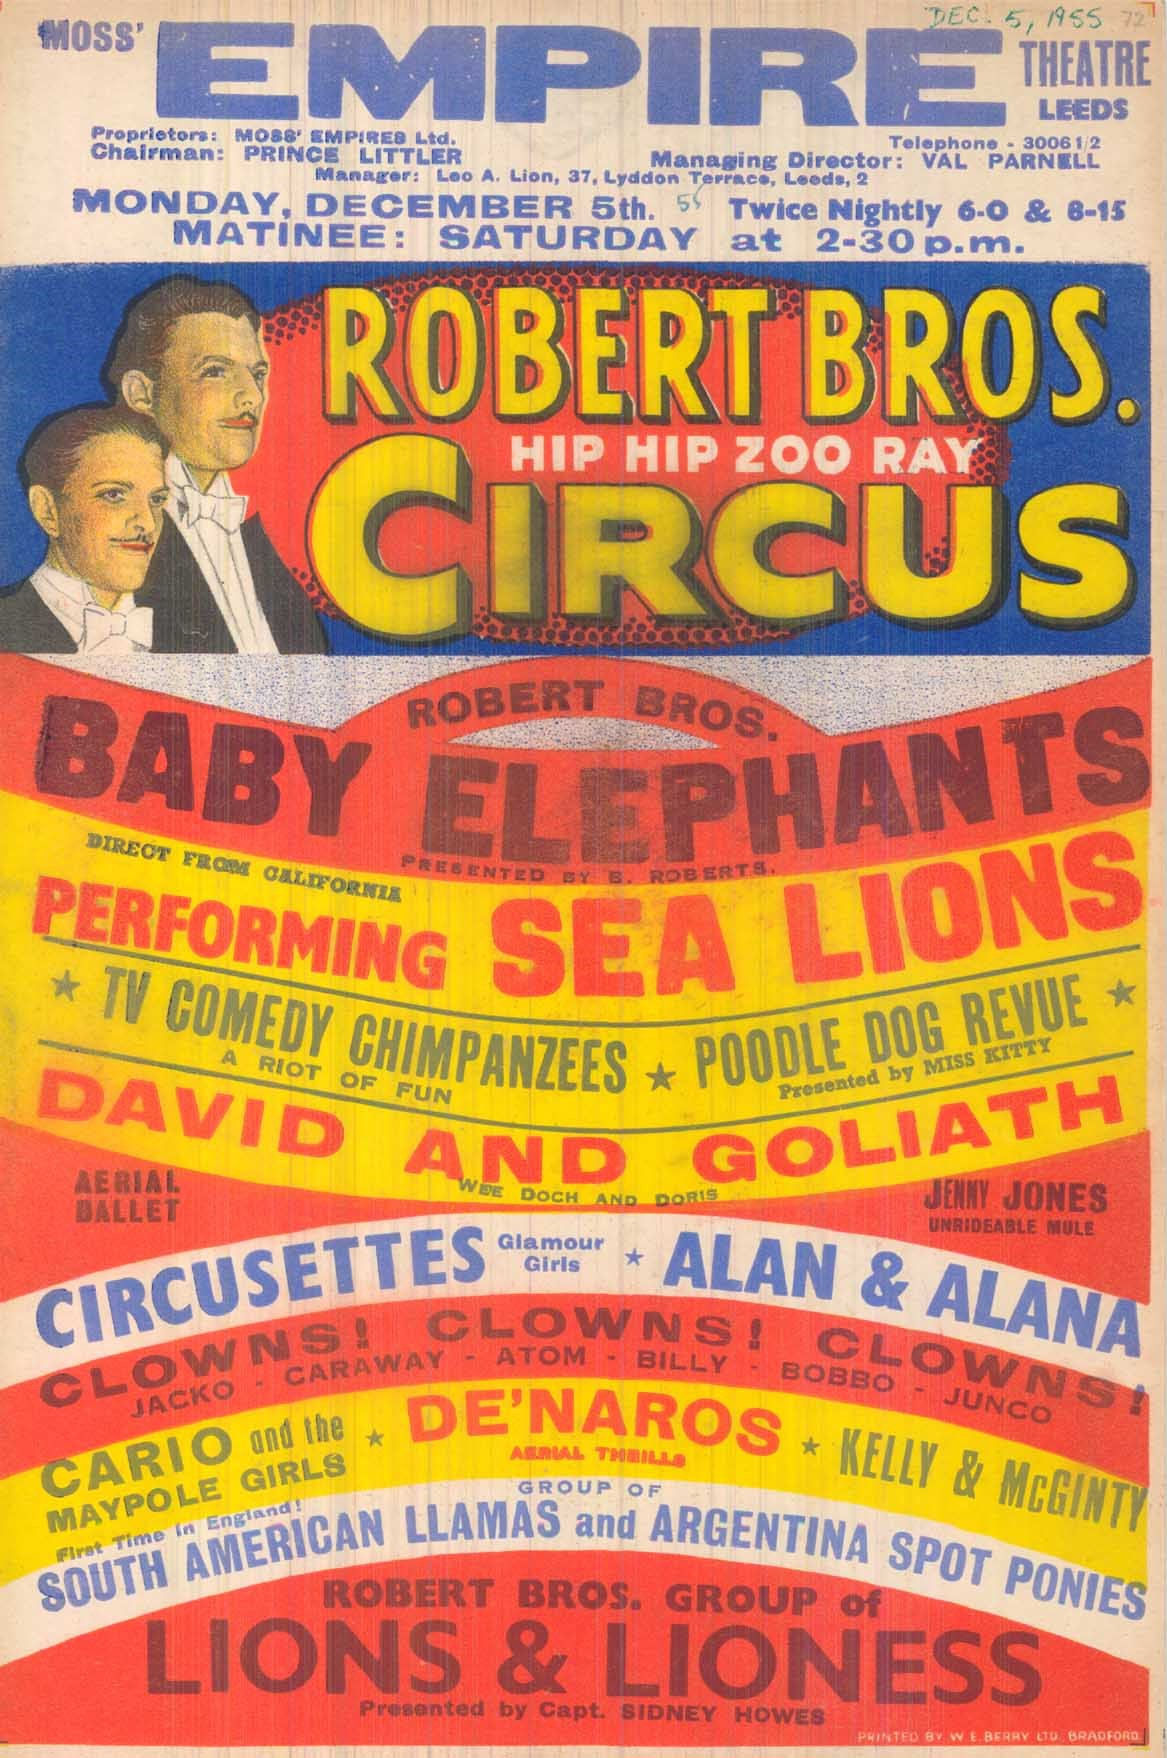 Colourful poster in curved stripes of red, yellow, blue and white advertising the circus.  On the left is a drawing of the Roberts Brothers in suits and with moustaches.